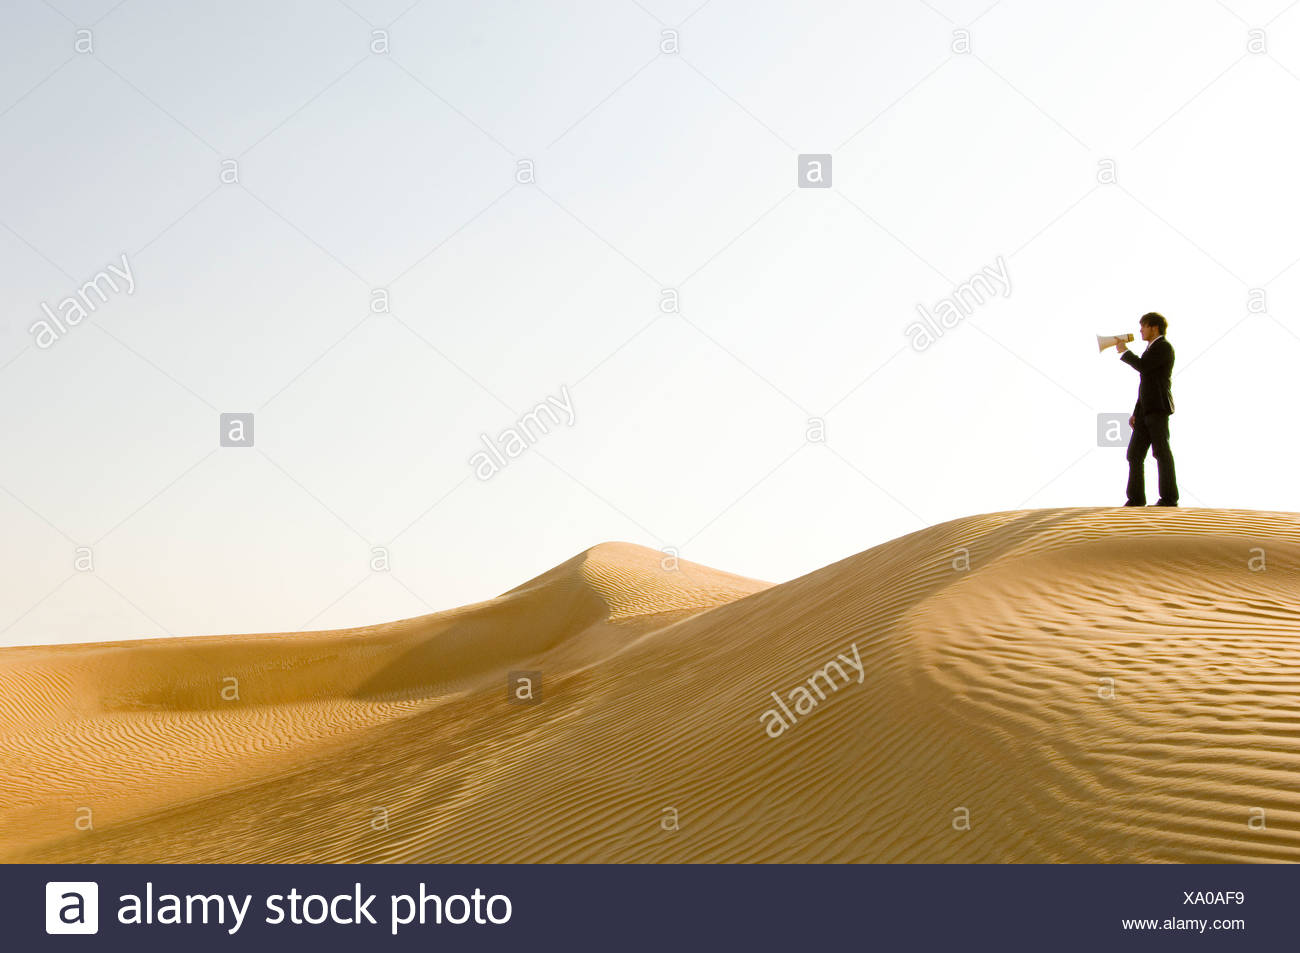 A young man standing in the desert with a loud hailer - Stock Image